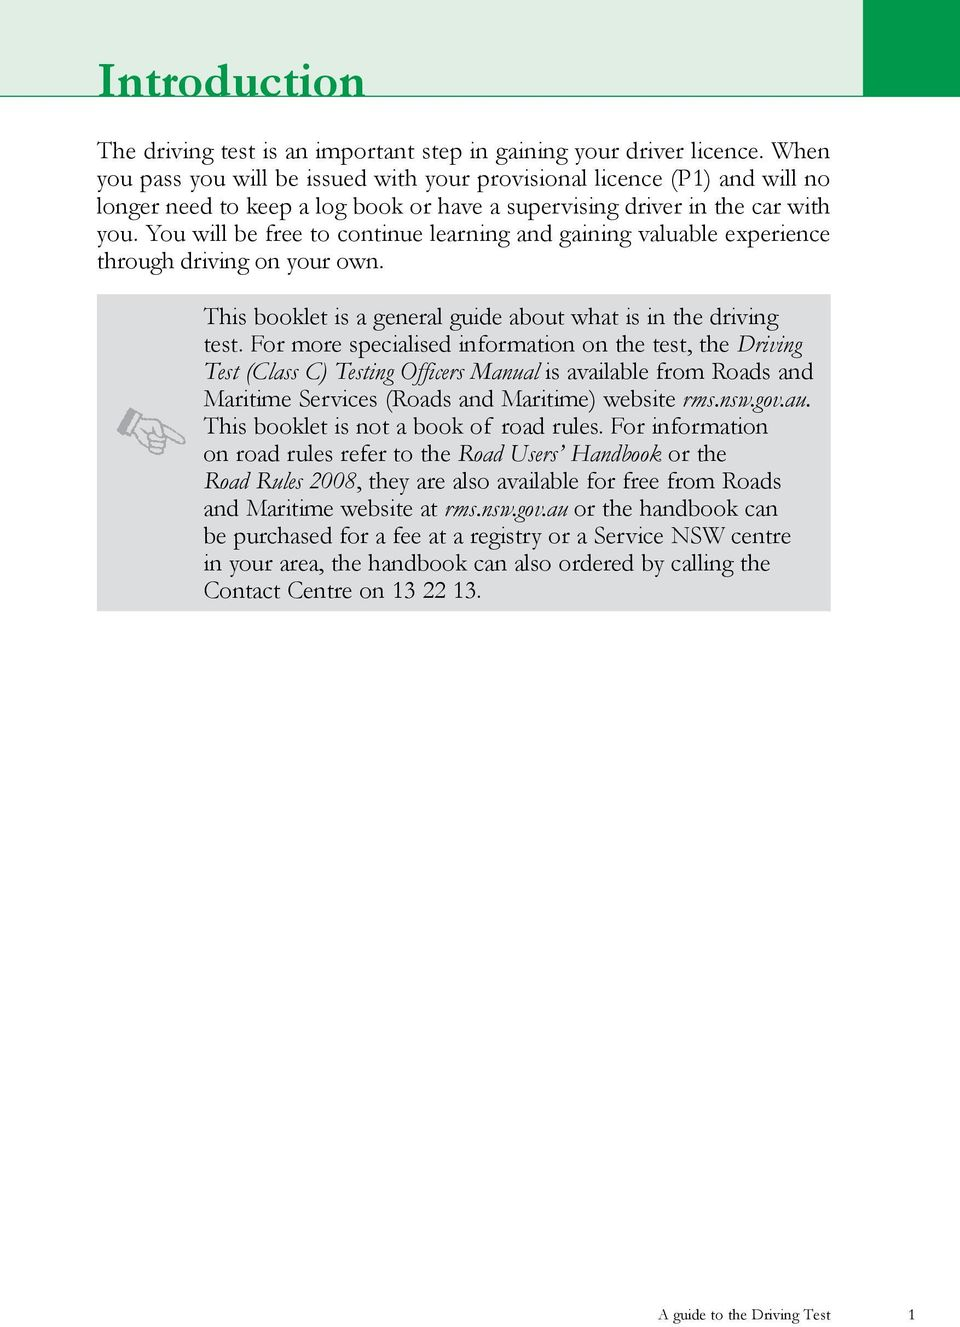 You will be free to continue learning and gaining valuable experience through driving on your own. This booklet is a general guide about what is in the driving test.